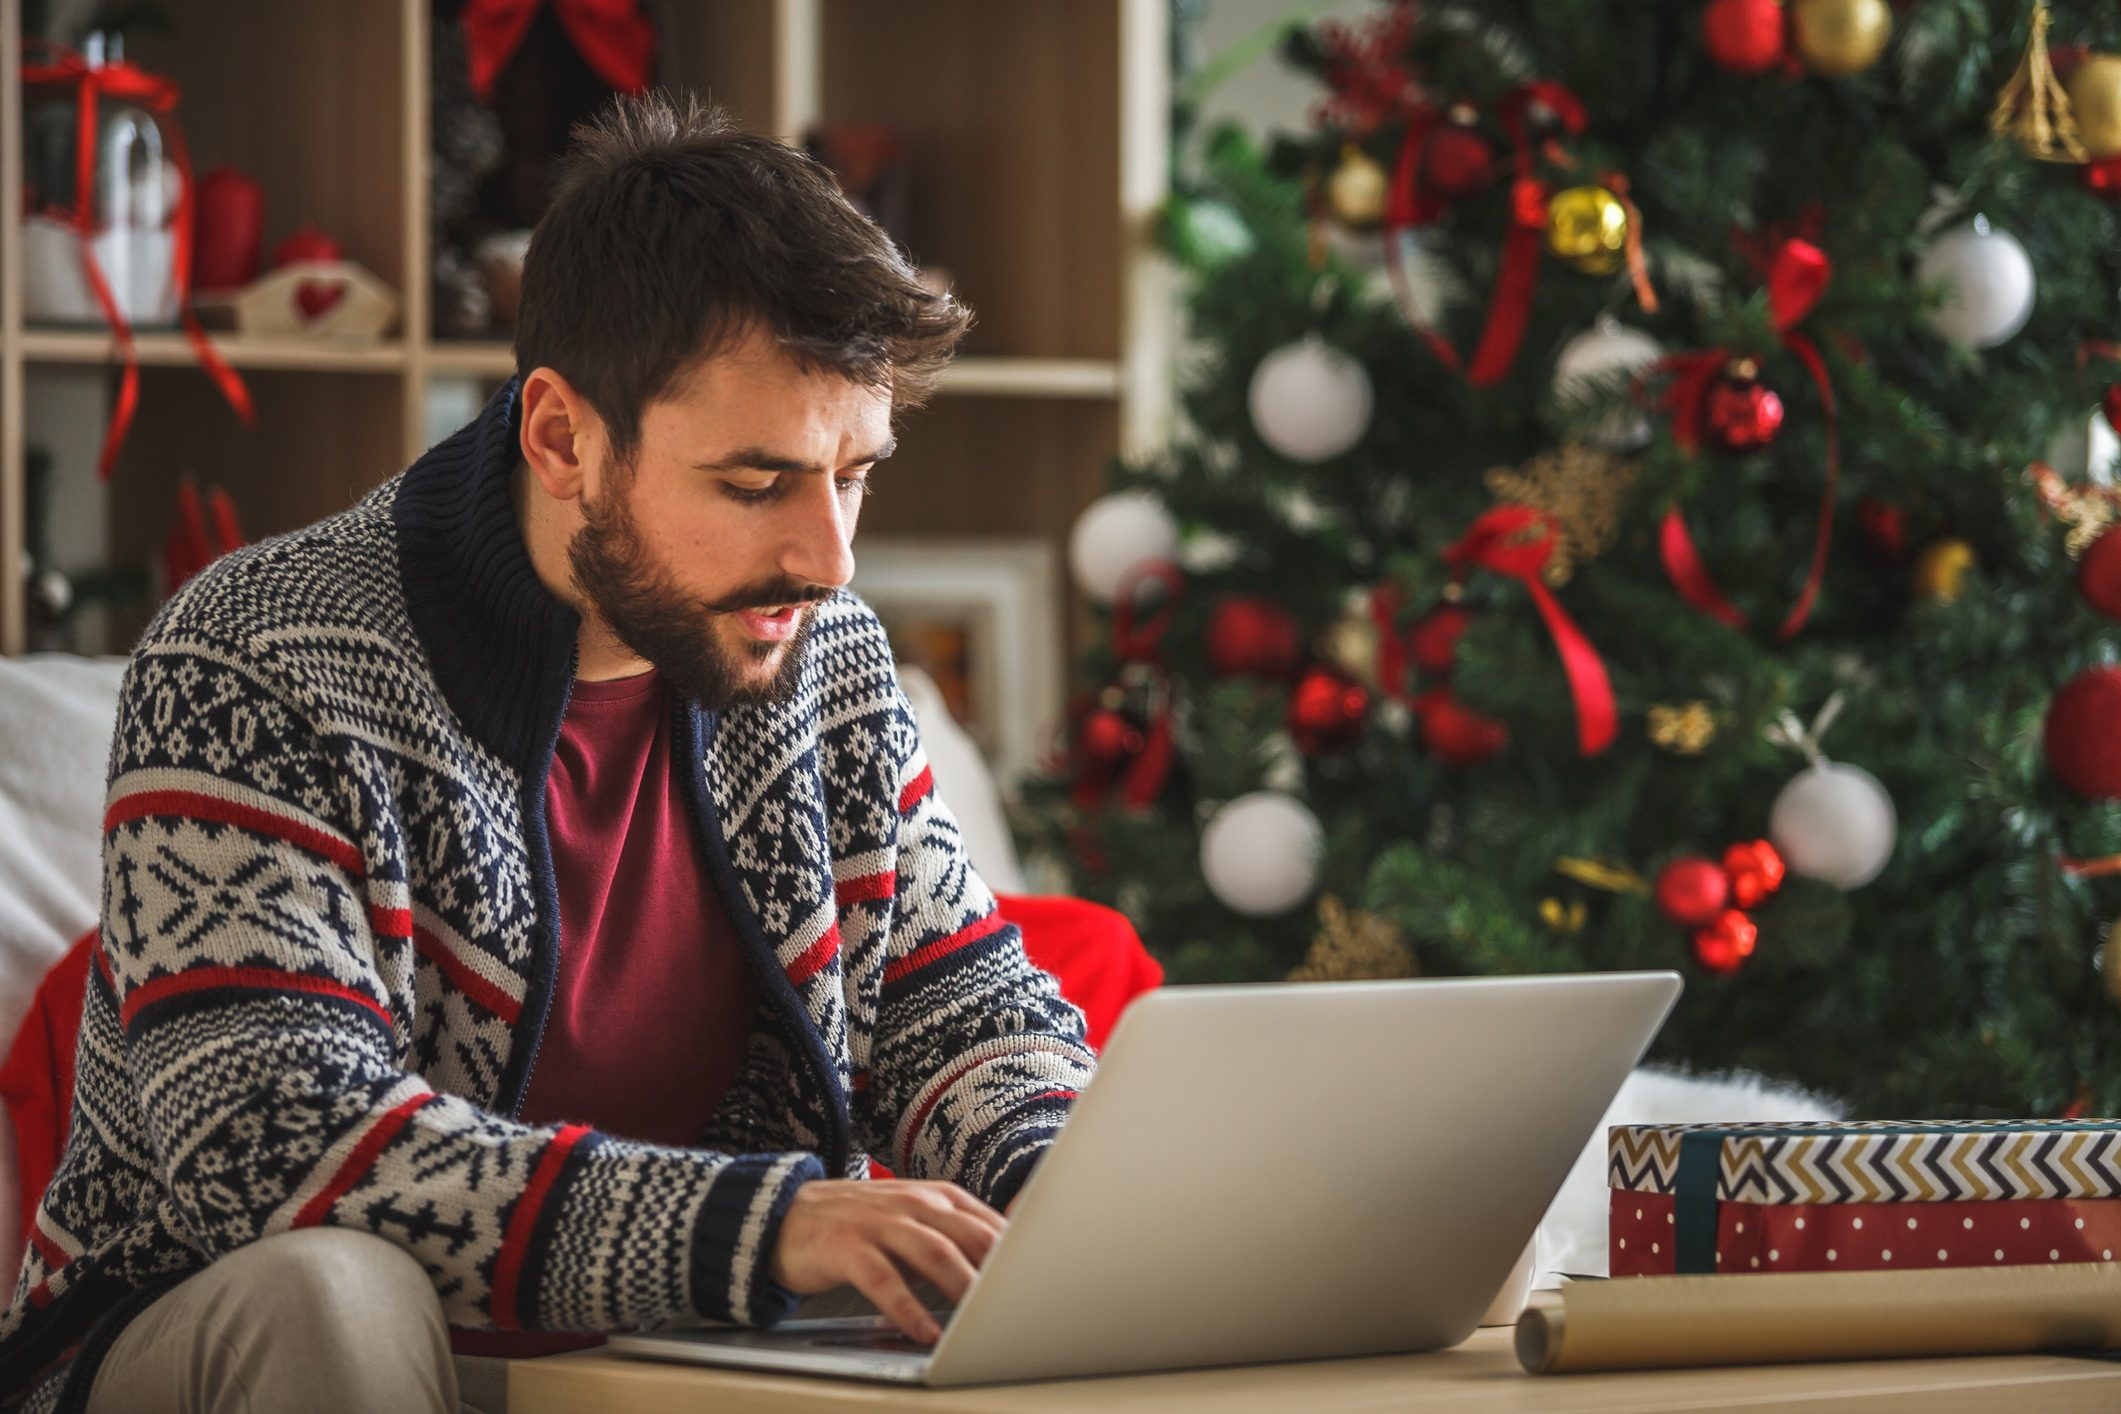 Young man using laptop in the living room near the Christmas tree